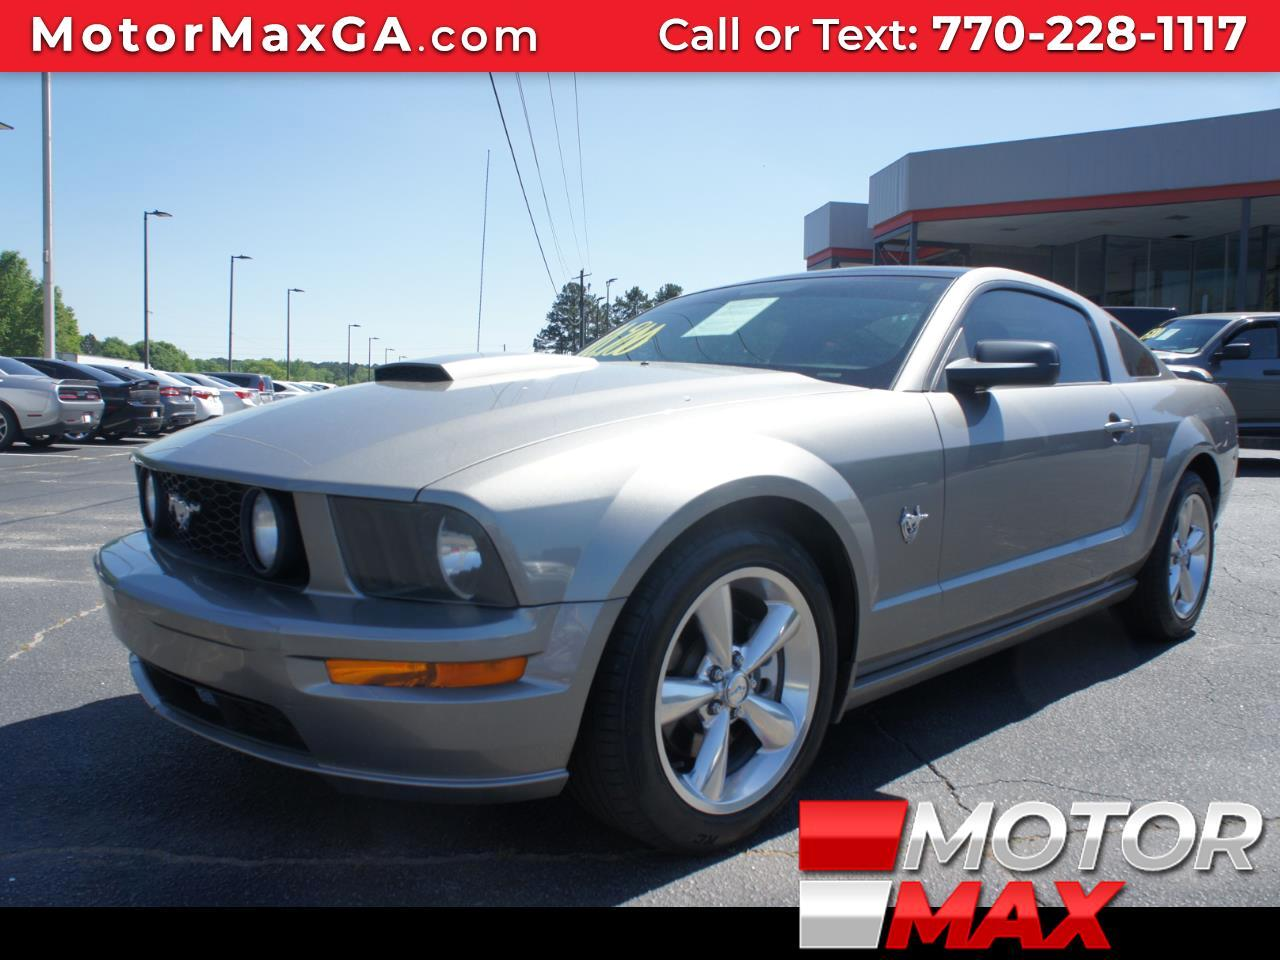 2009 Ford MUSTANG GT 2DR COUPE